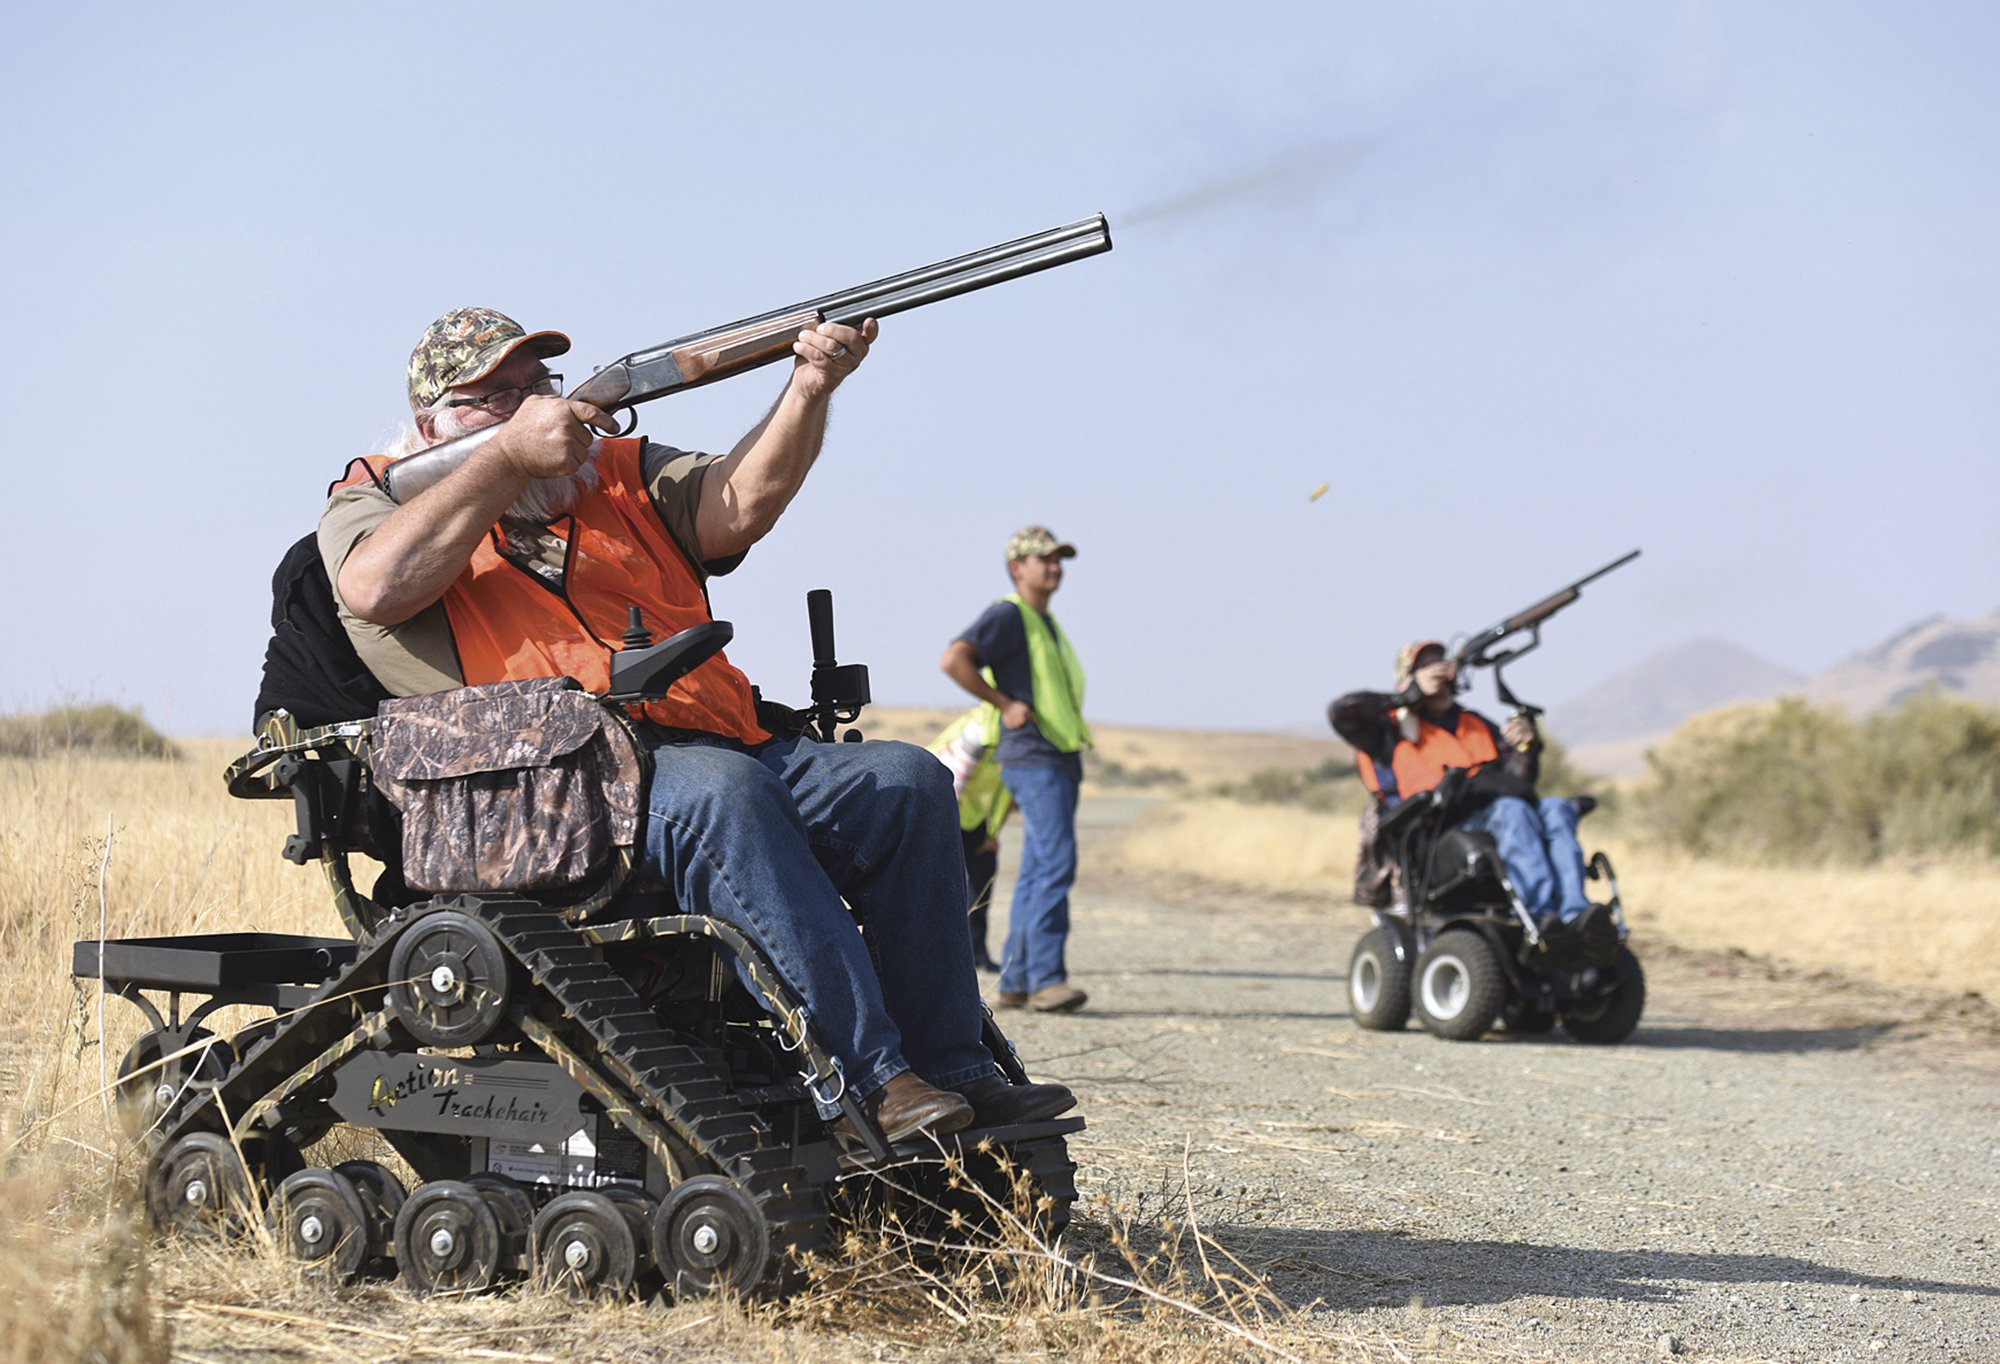 Man organizes hunting event for wheelchair users